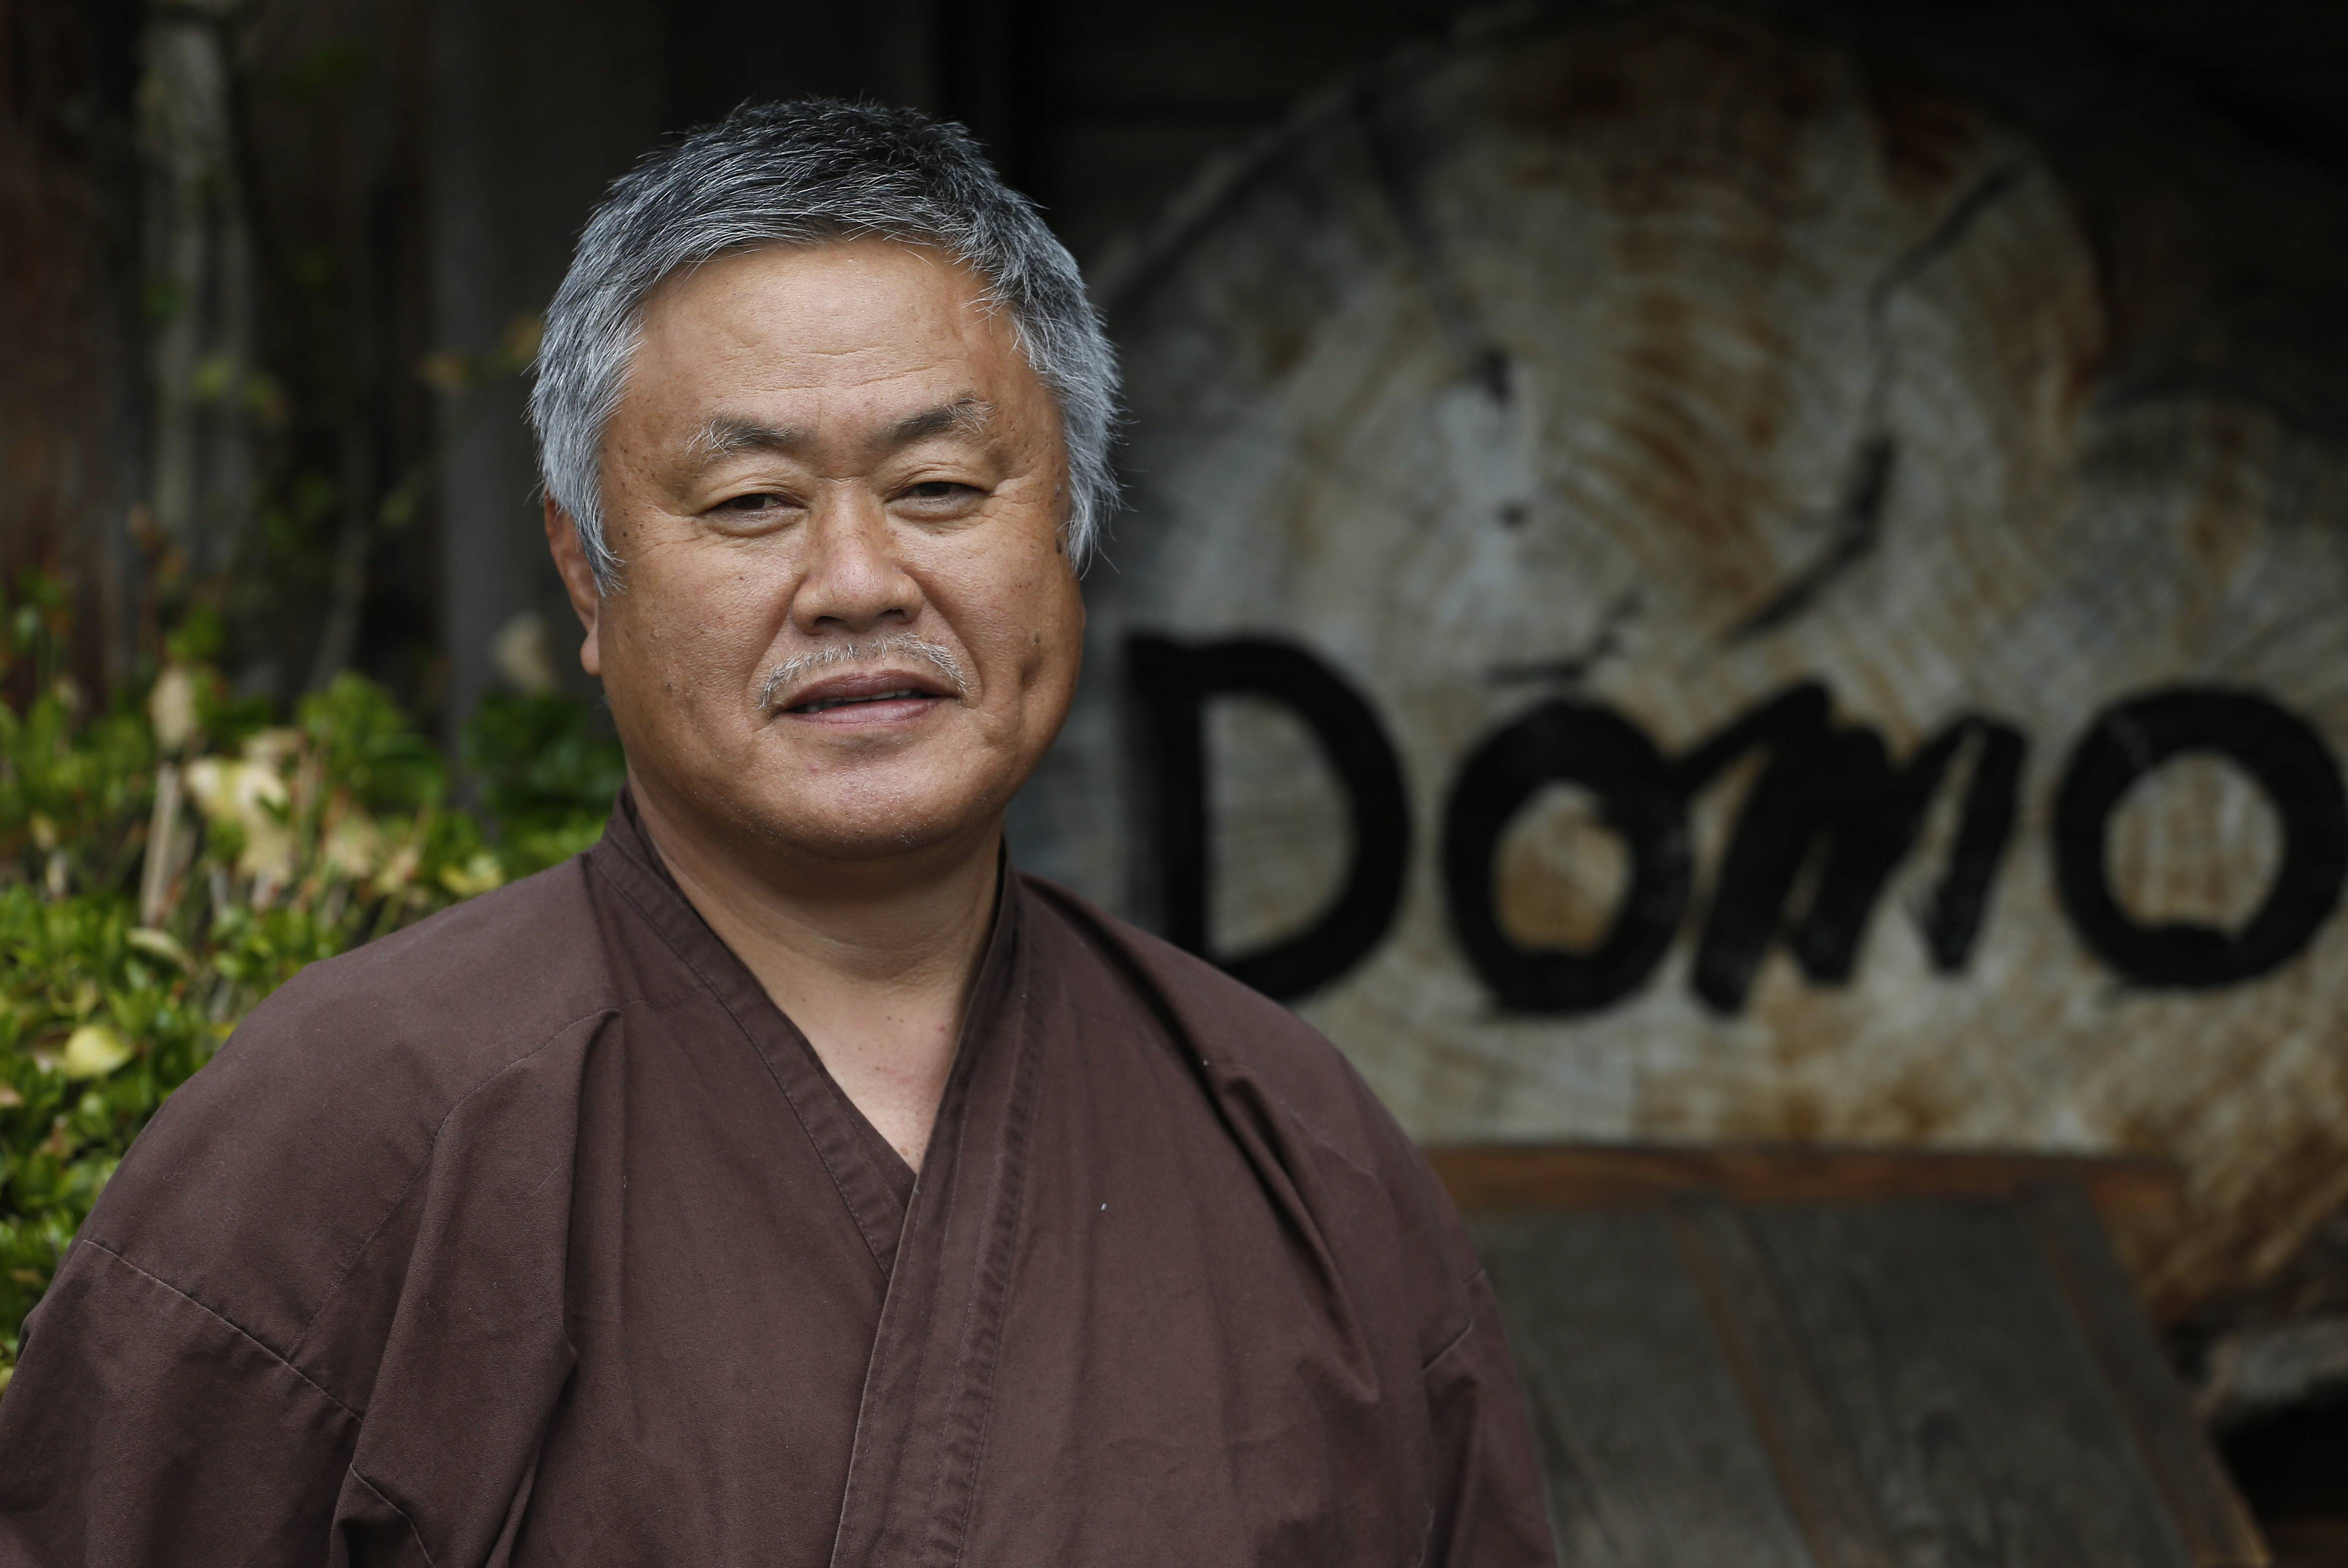 Domo owner and head chef Gaku Homma uses the profits not to enrich himself financially, but instead funds orphanages around the world.